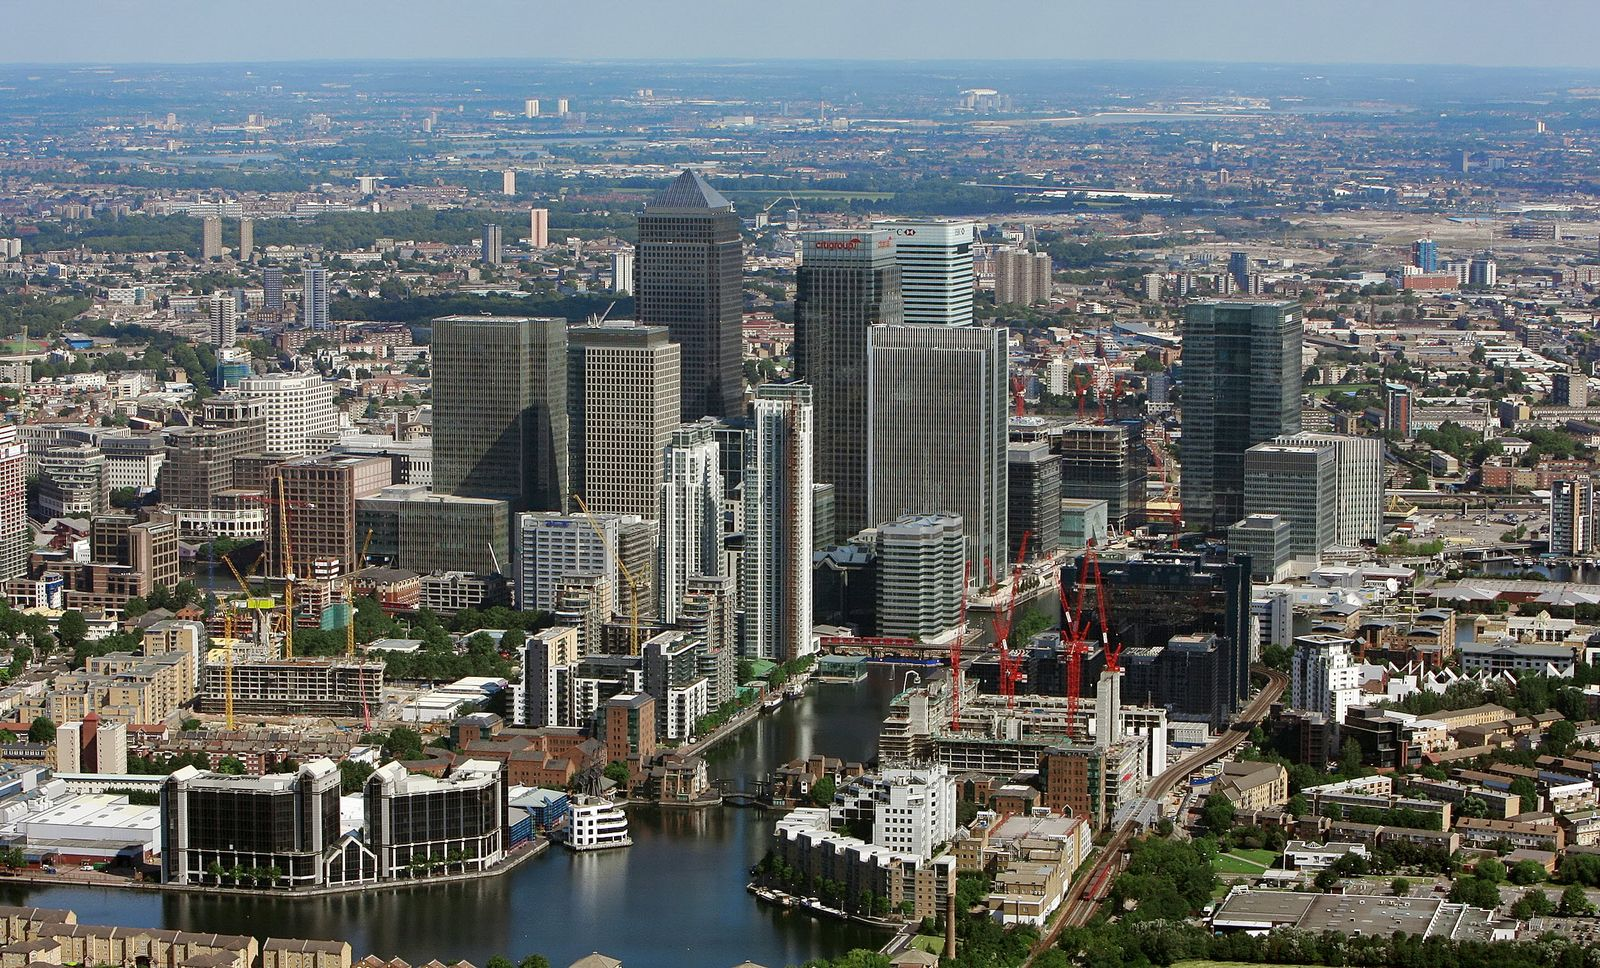 Londons neues Finanzzentrum / Canary Wharf / Isle of Dogs / Borough of Tower Hamlets / Bankenviertel